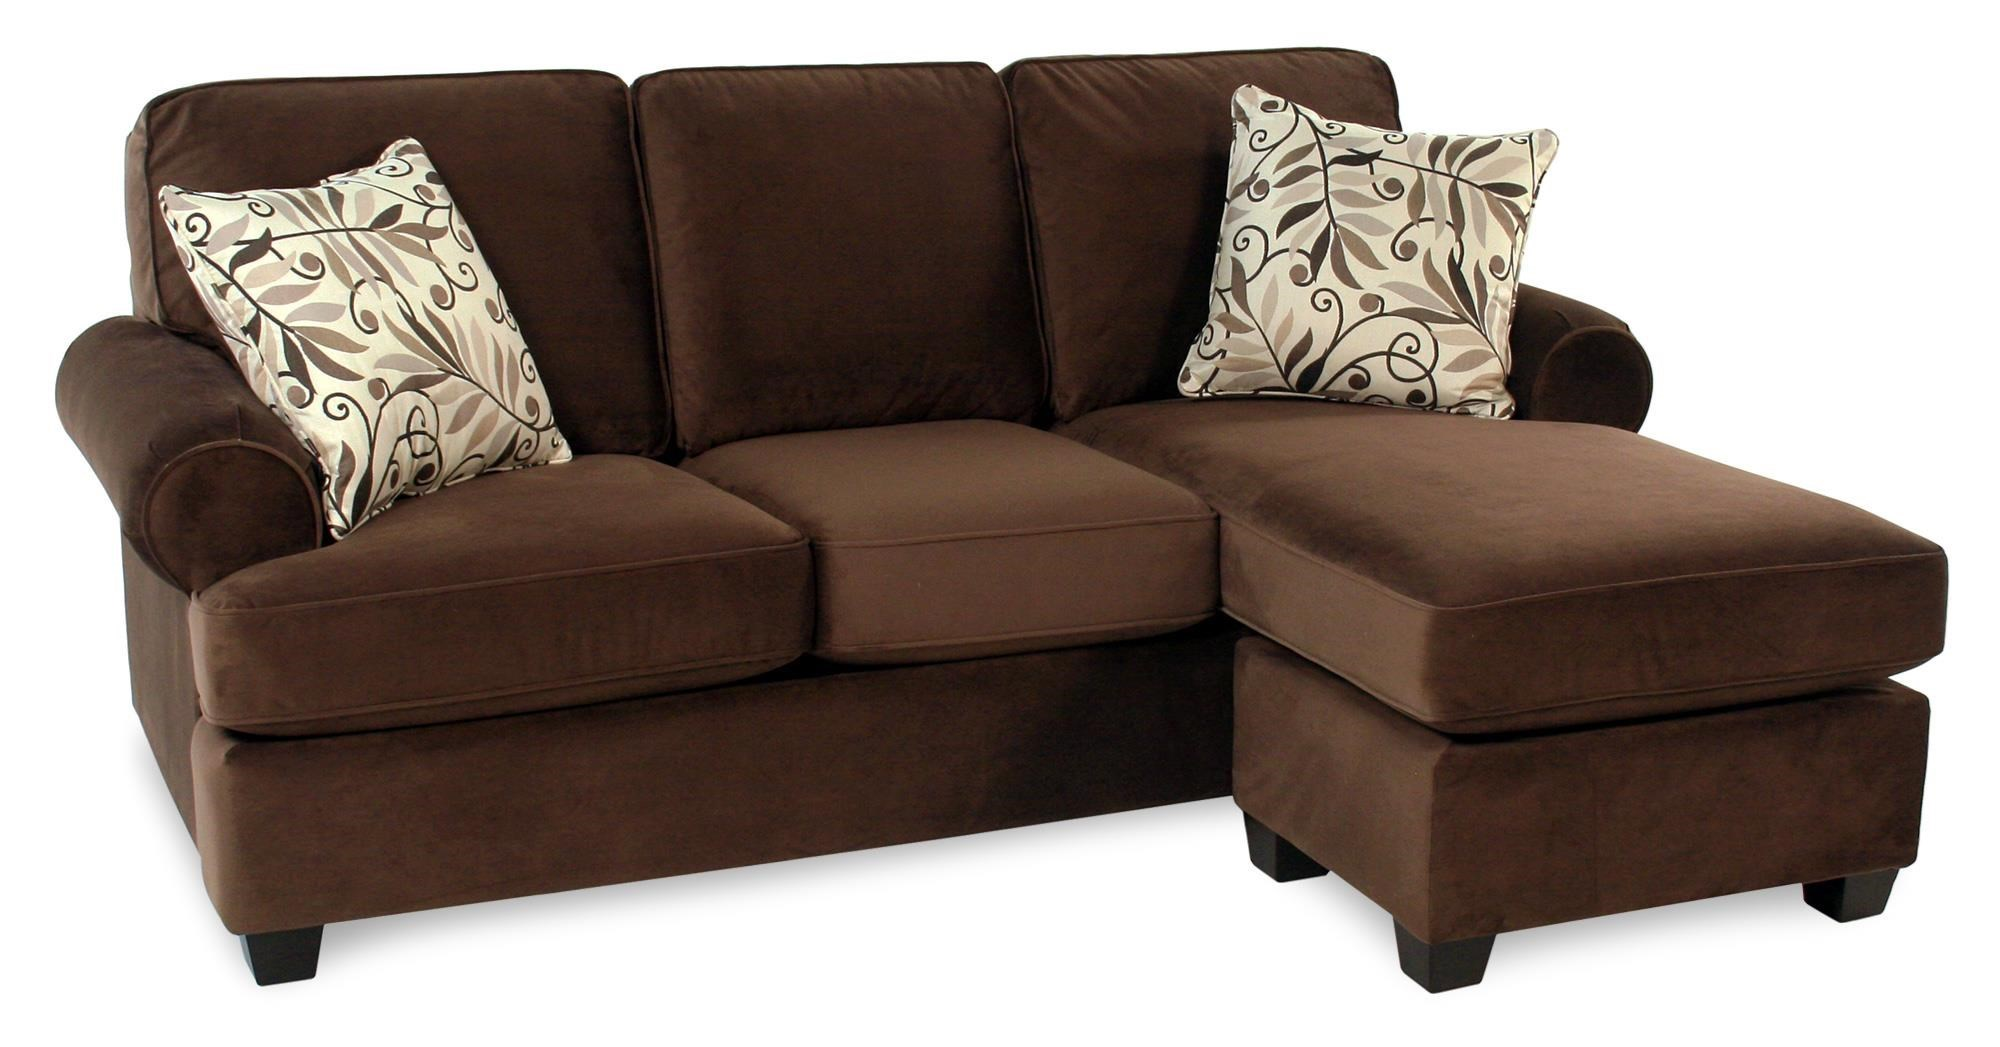 Hot Chocolate Sofa W/ Reversible Chaise By Decor Rest At Rotmans